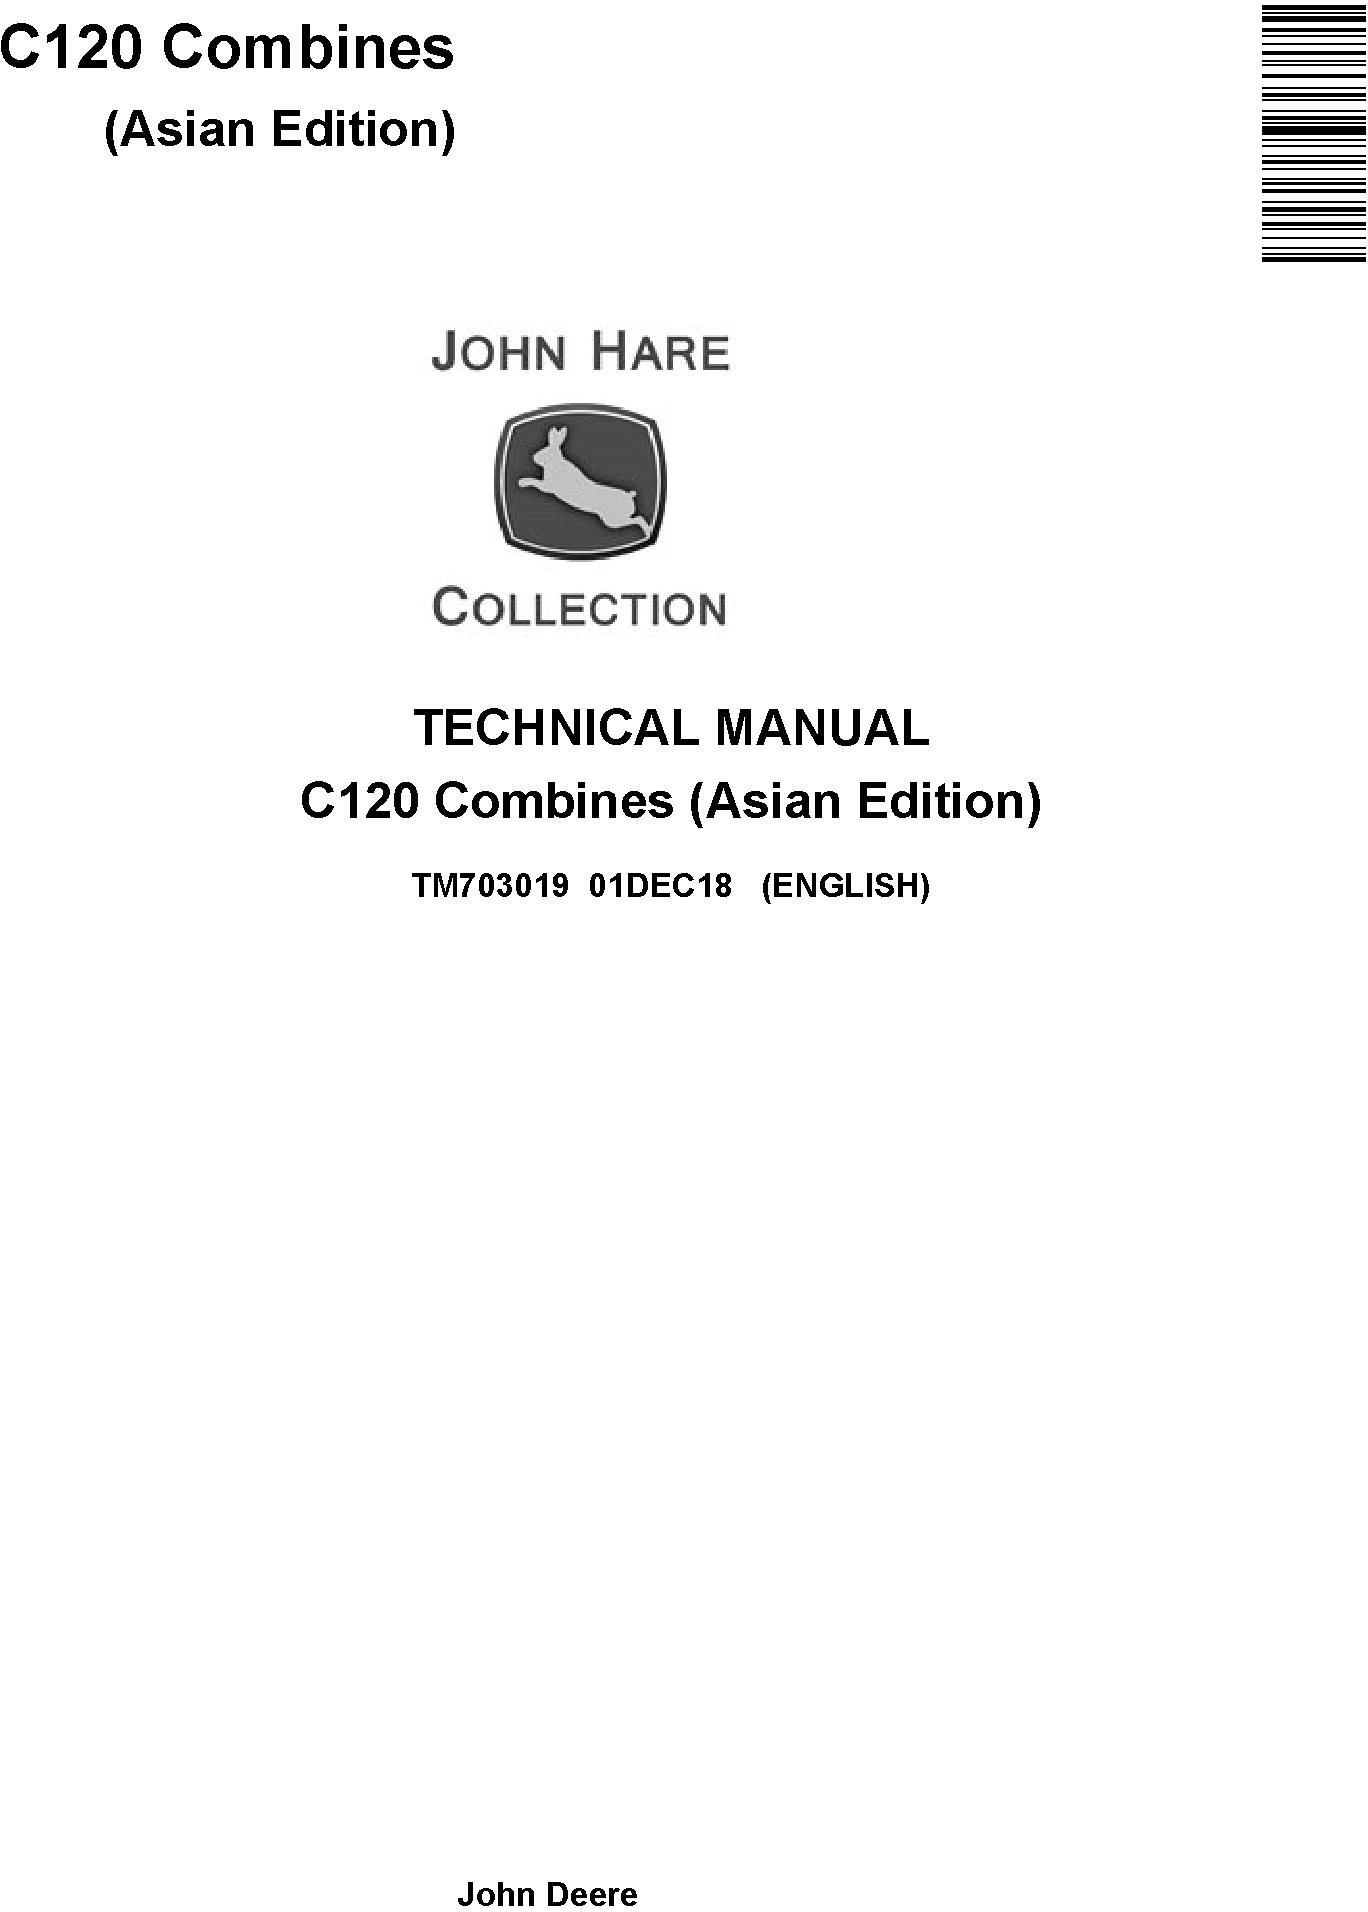 John Deere C120 Combines (Asian Edition) Technical Service Manual (TM703019) - 19233